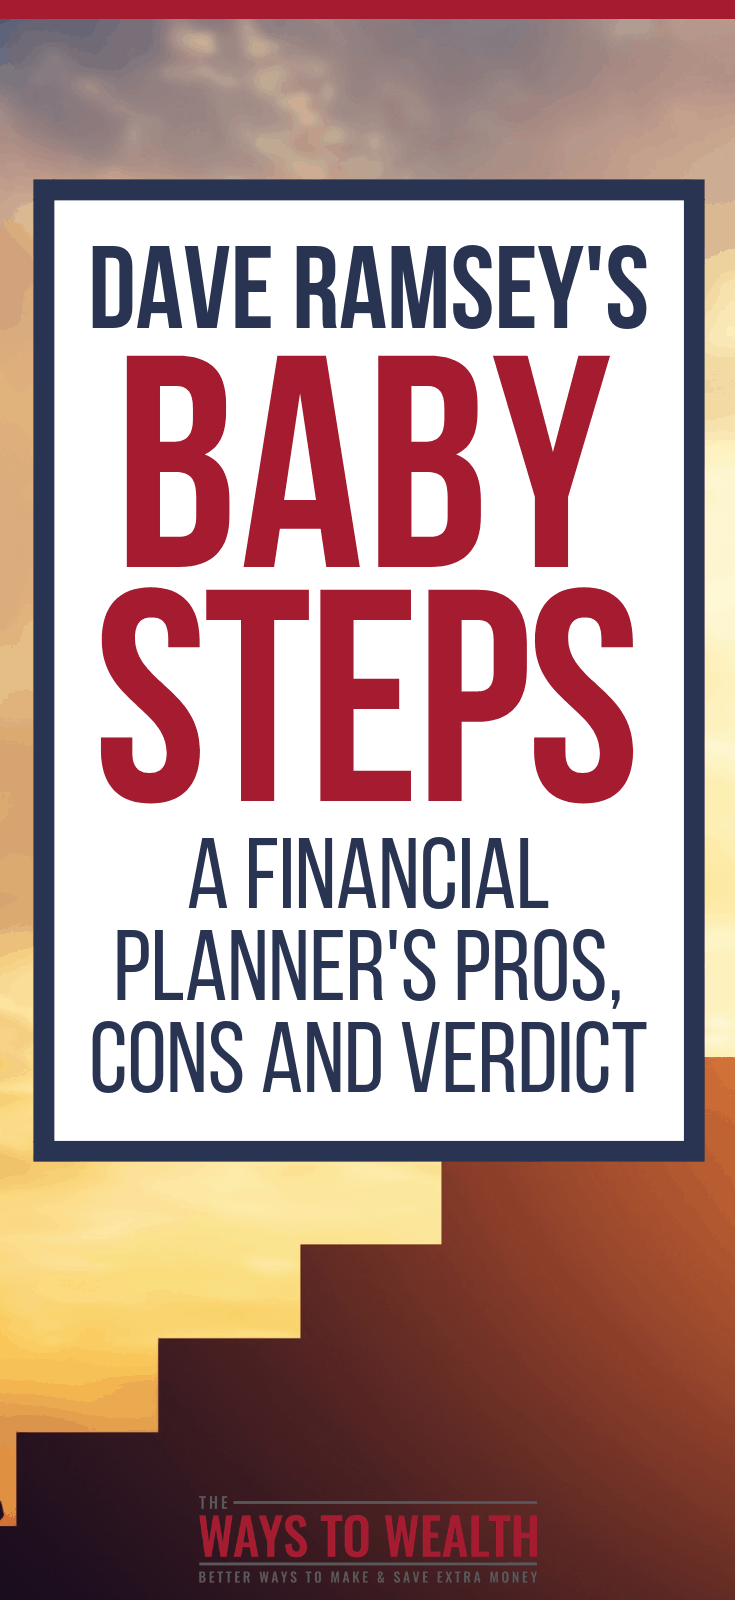 Dave Ramsey's Baby Steps: A CFP®s Pros, Cons and Verdict. Are Dave Ramsey's Baby Steps right for you? Here's what you need to know, from the viewpoint of a CERTIFIED FINANCIAL PLANNER™. Plus, tips for climbing through the steps faster.#thewaystowealth #daveramsey #debtfree #debt